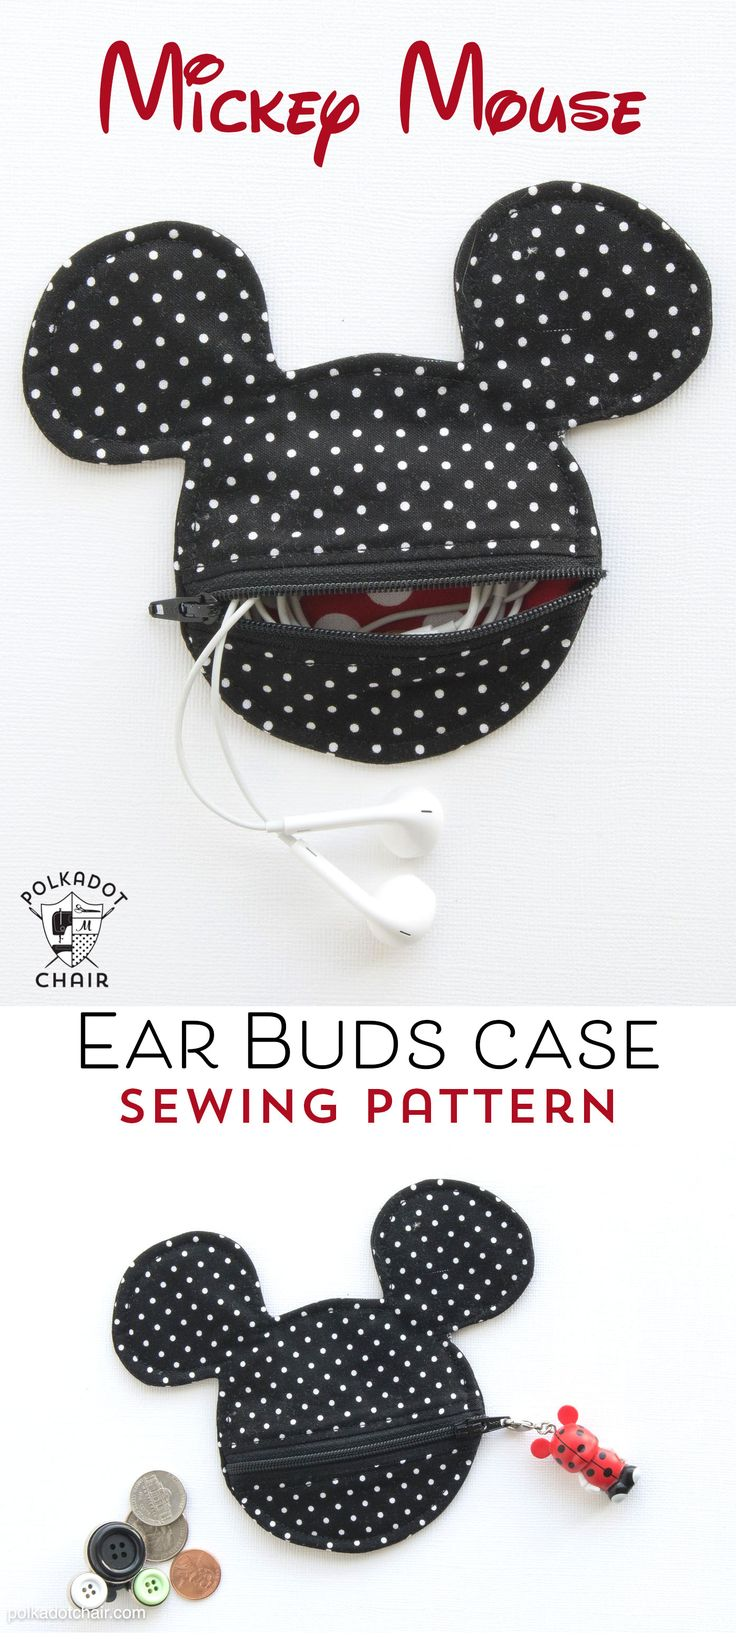 Free Sewing pattern for a Mickey Mouse inspired earbuds case / coin purse. This would be so cute to make before my next Disney vacation!